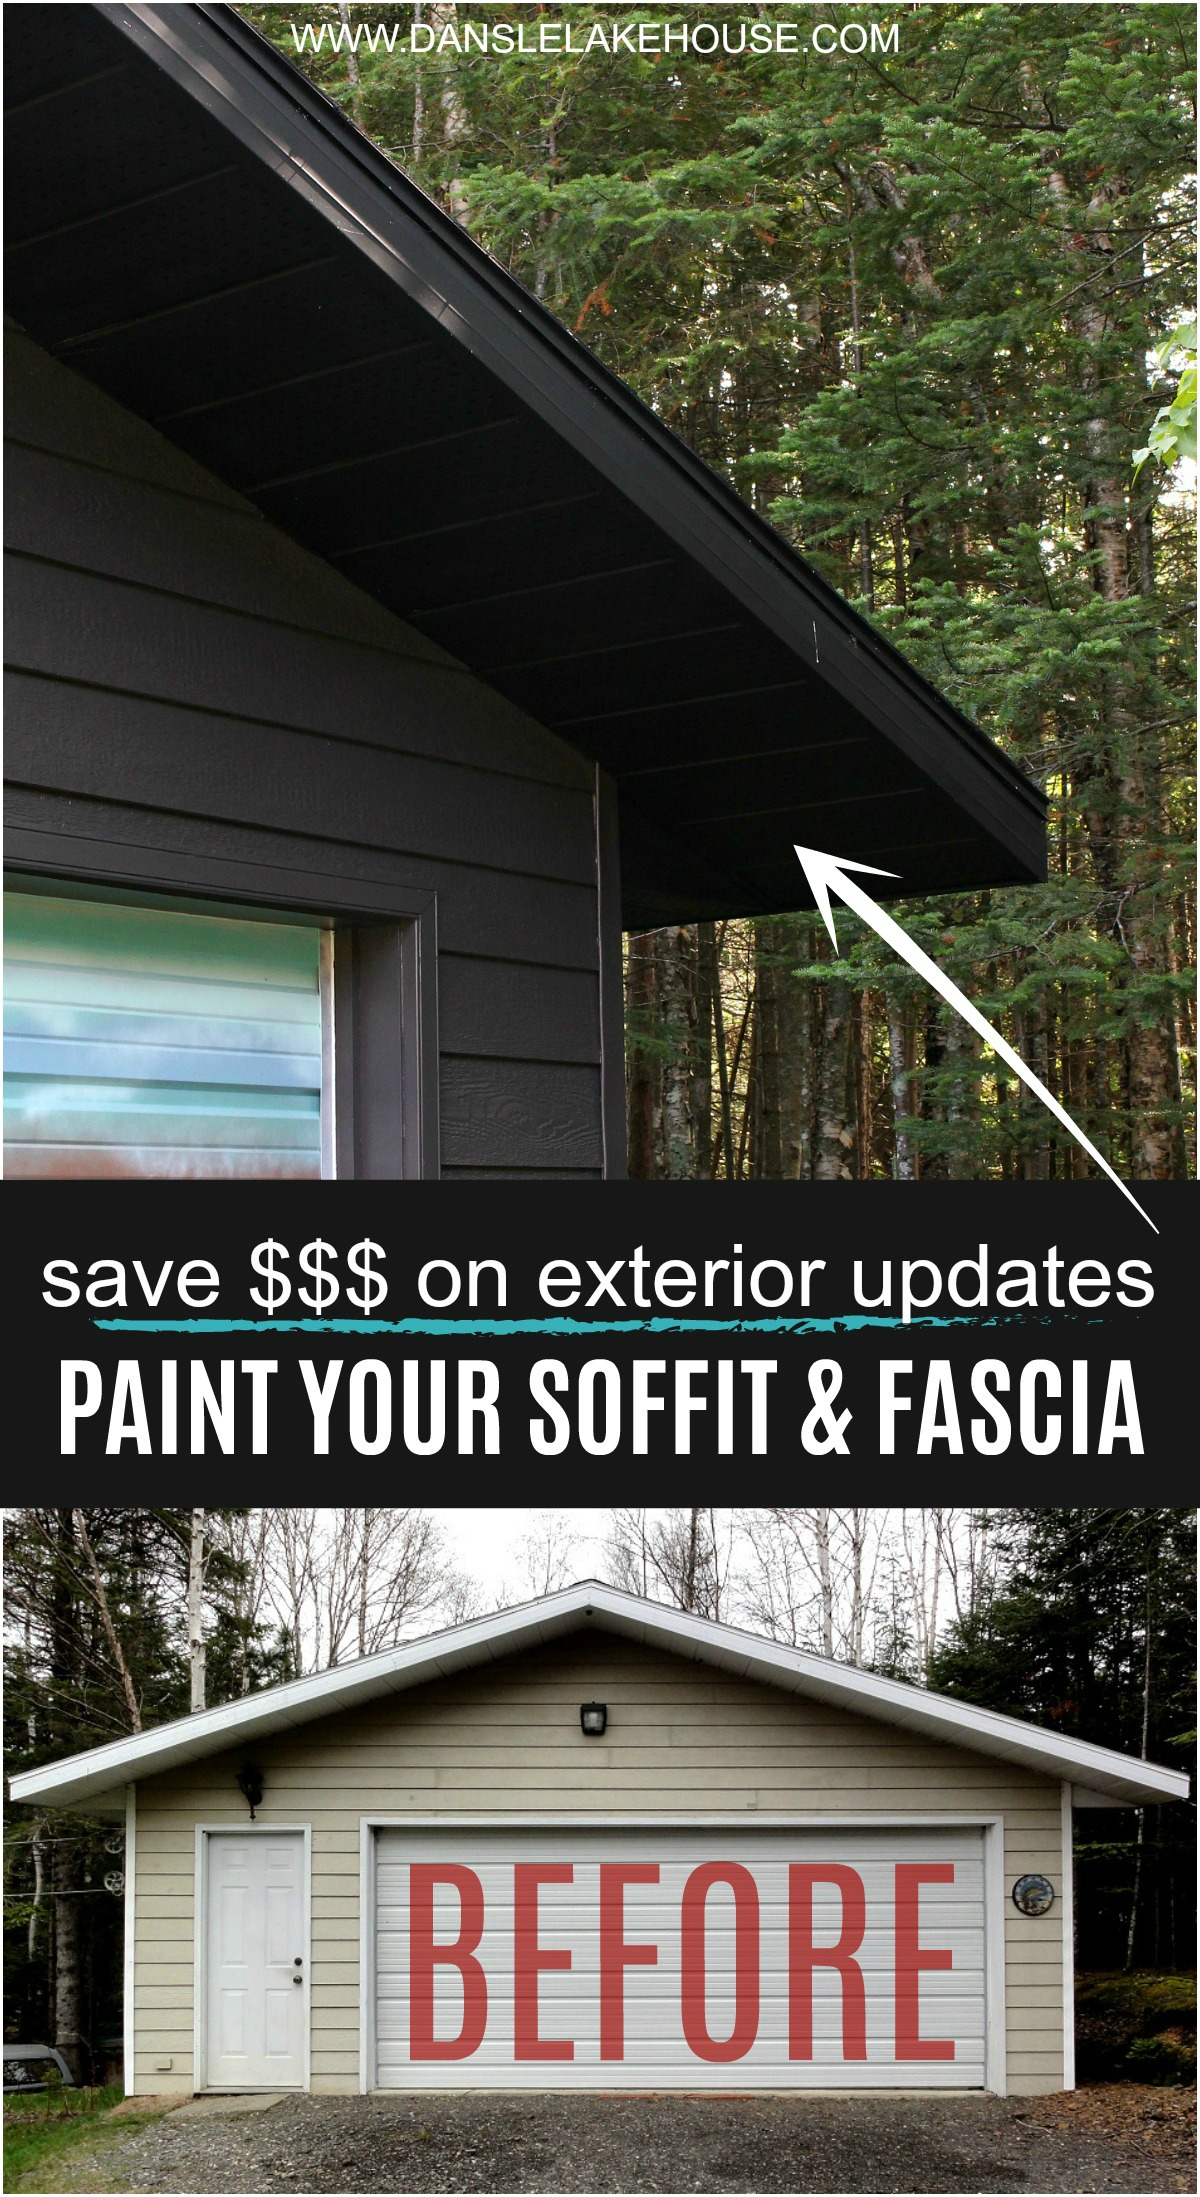 Paint Your Soffit & Fascia